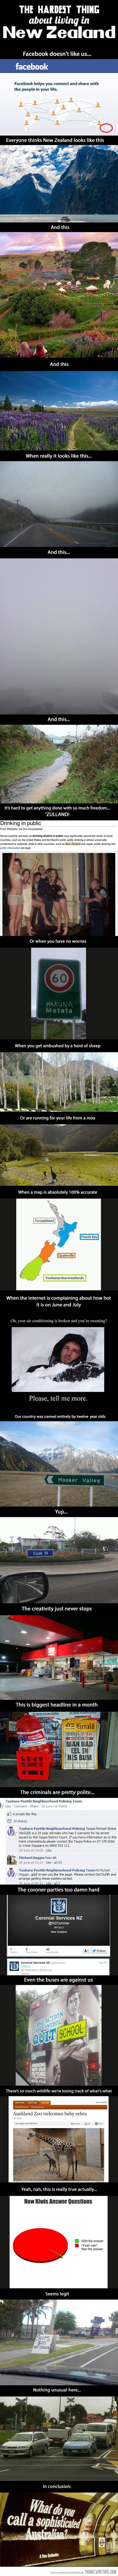 Quite amusing because us kiwis have an awesome sense of humour! :-D